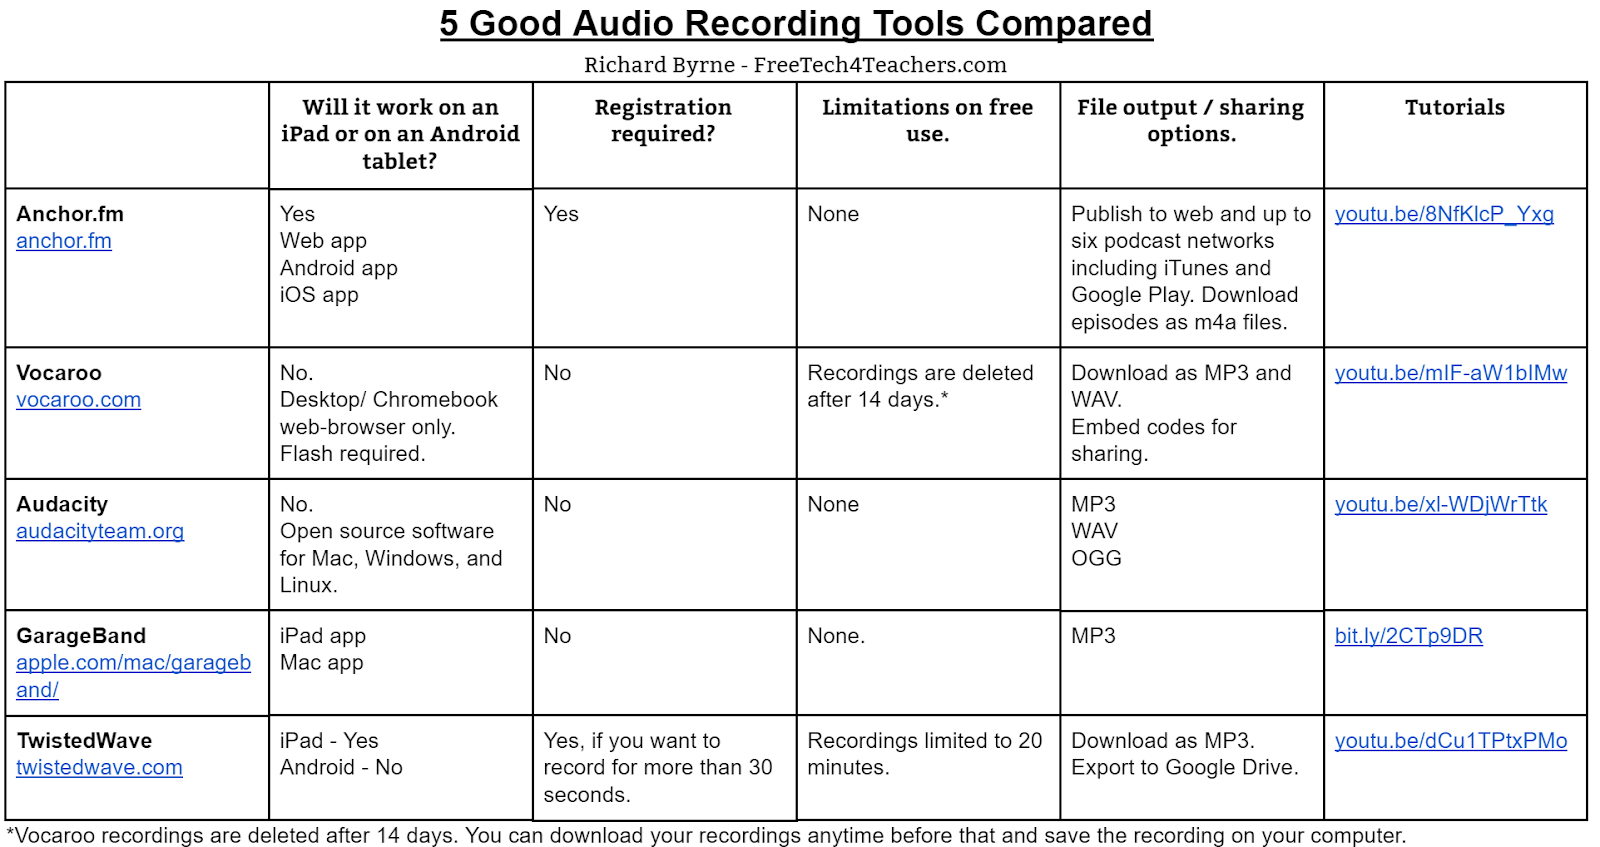 A Few Years Ago I Put Together Series Of Charts That Provided Quick Overviews The Features Por Ed Tech Tools Since Then Some Favorite